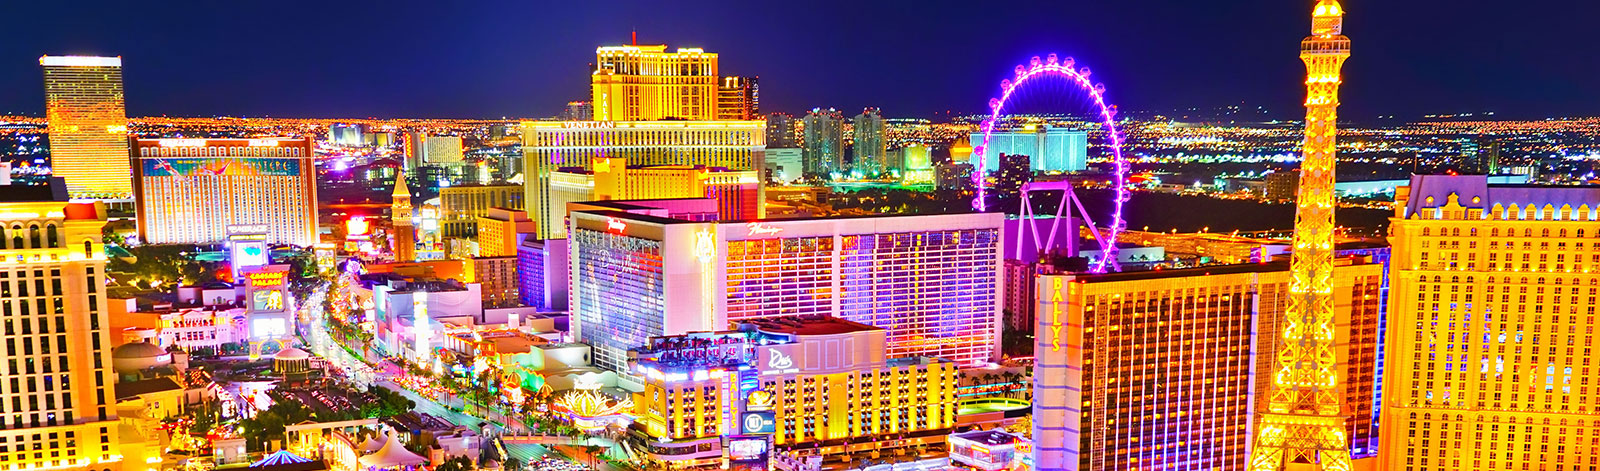 Top 12 Budget Travel Destinations - Las Vegas